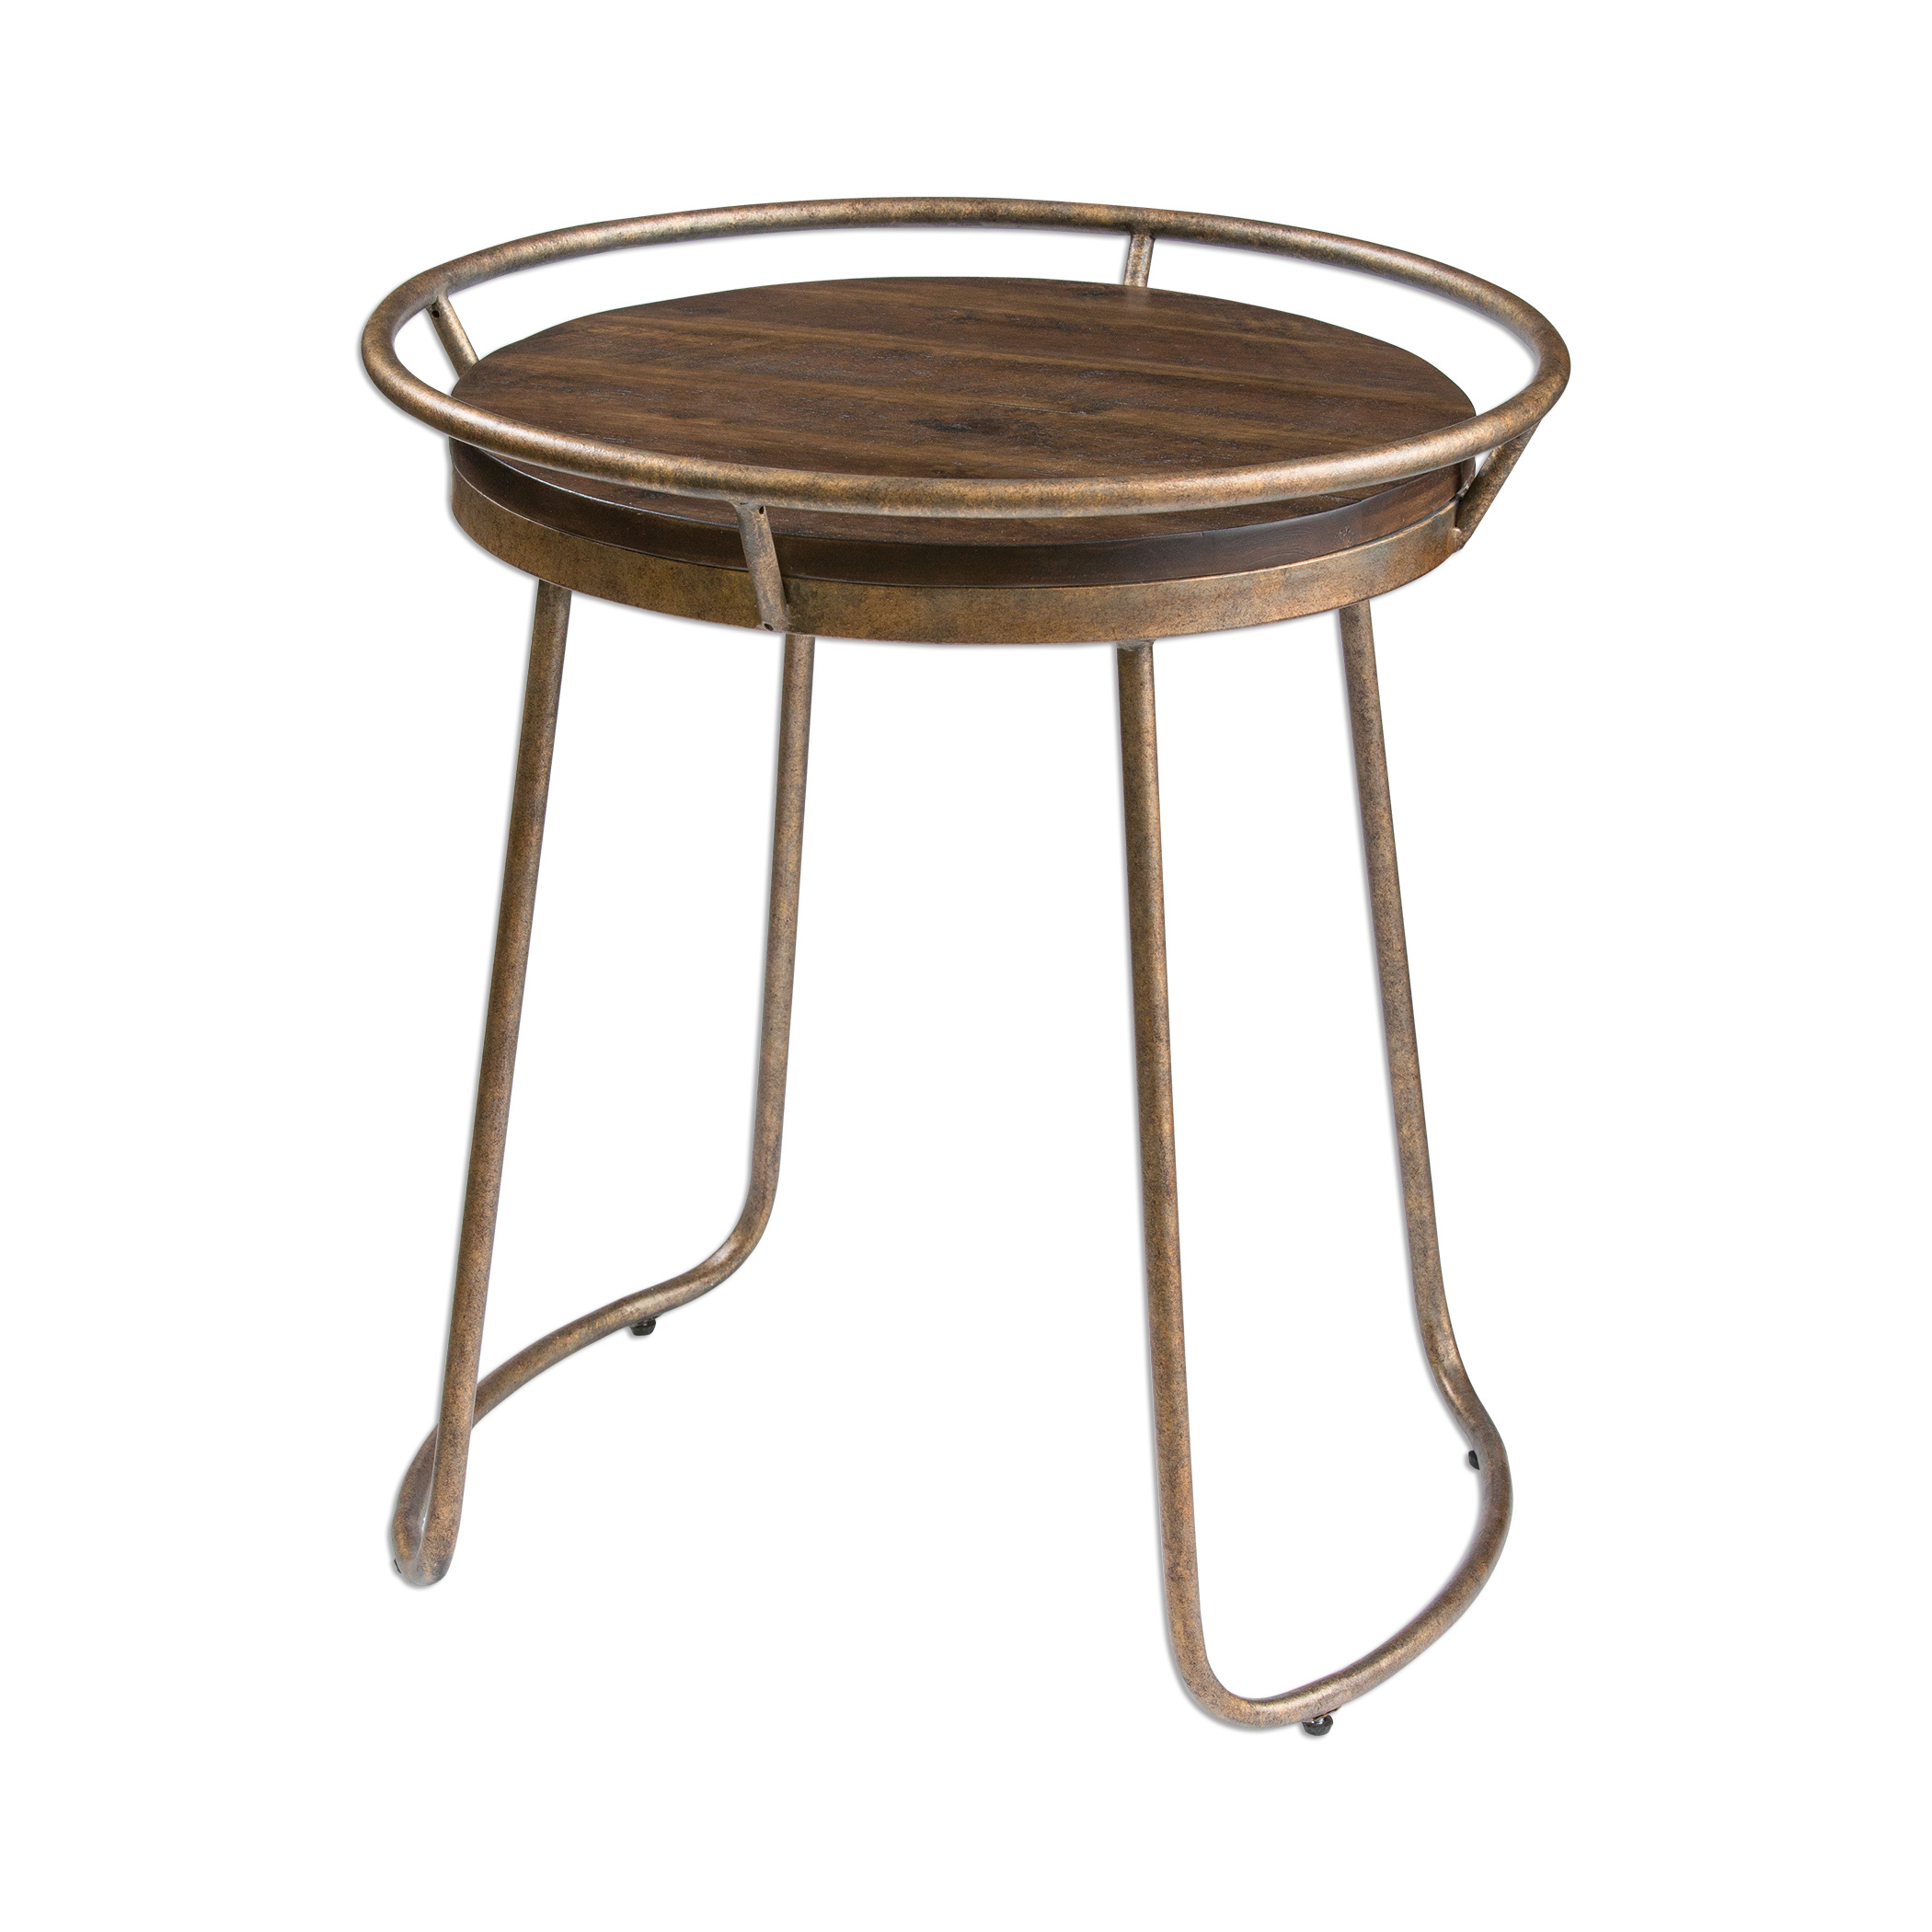 uttermost coffee accent tables rayen ashley furniture sinley table valley city small rectangular outdoor side round rope solid wood black inch wide stained glass floor lamp shades